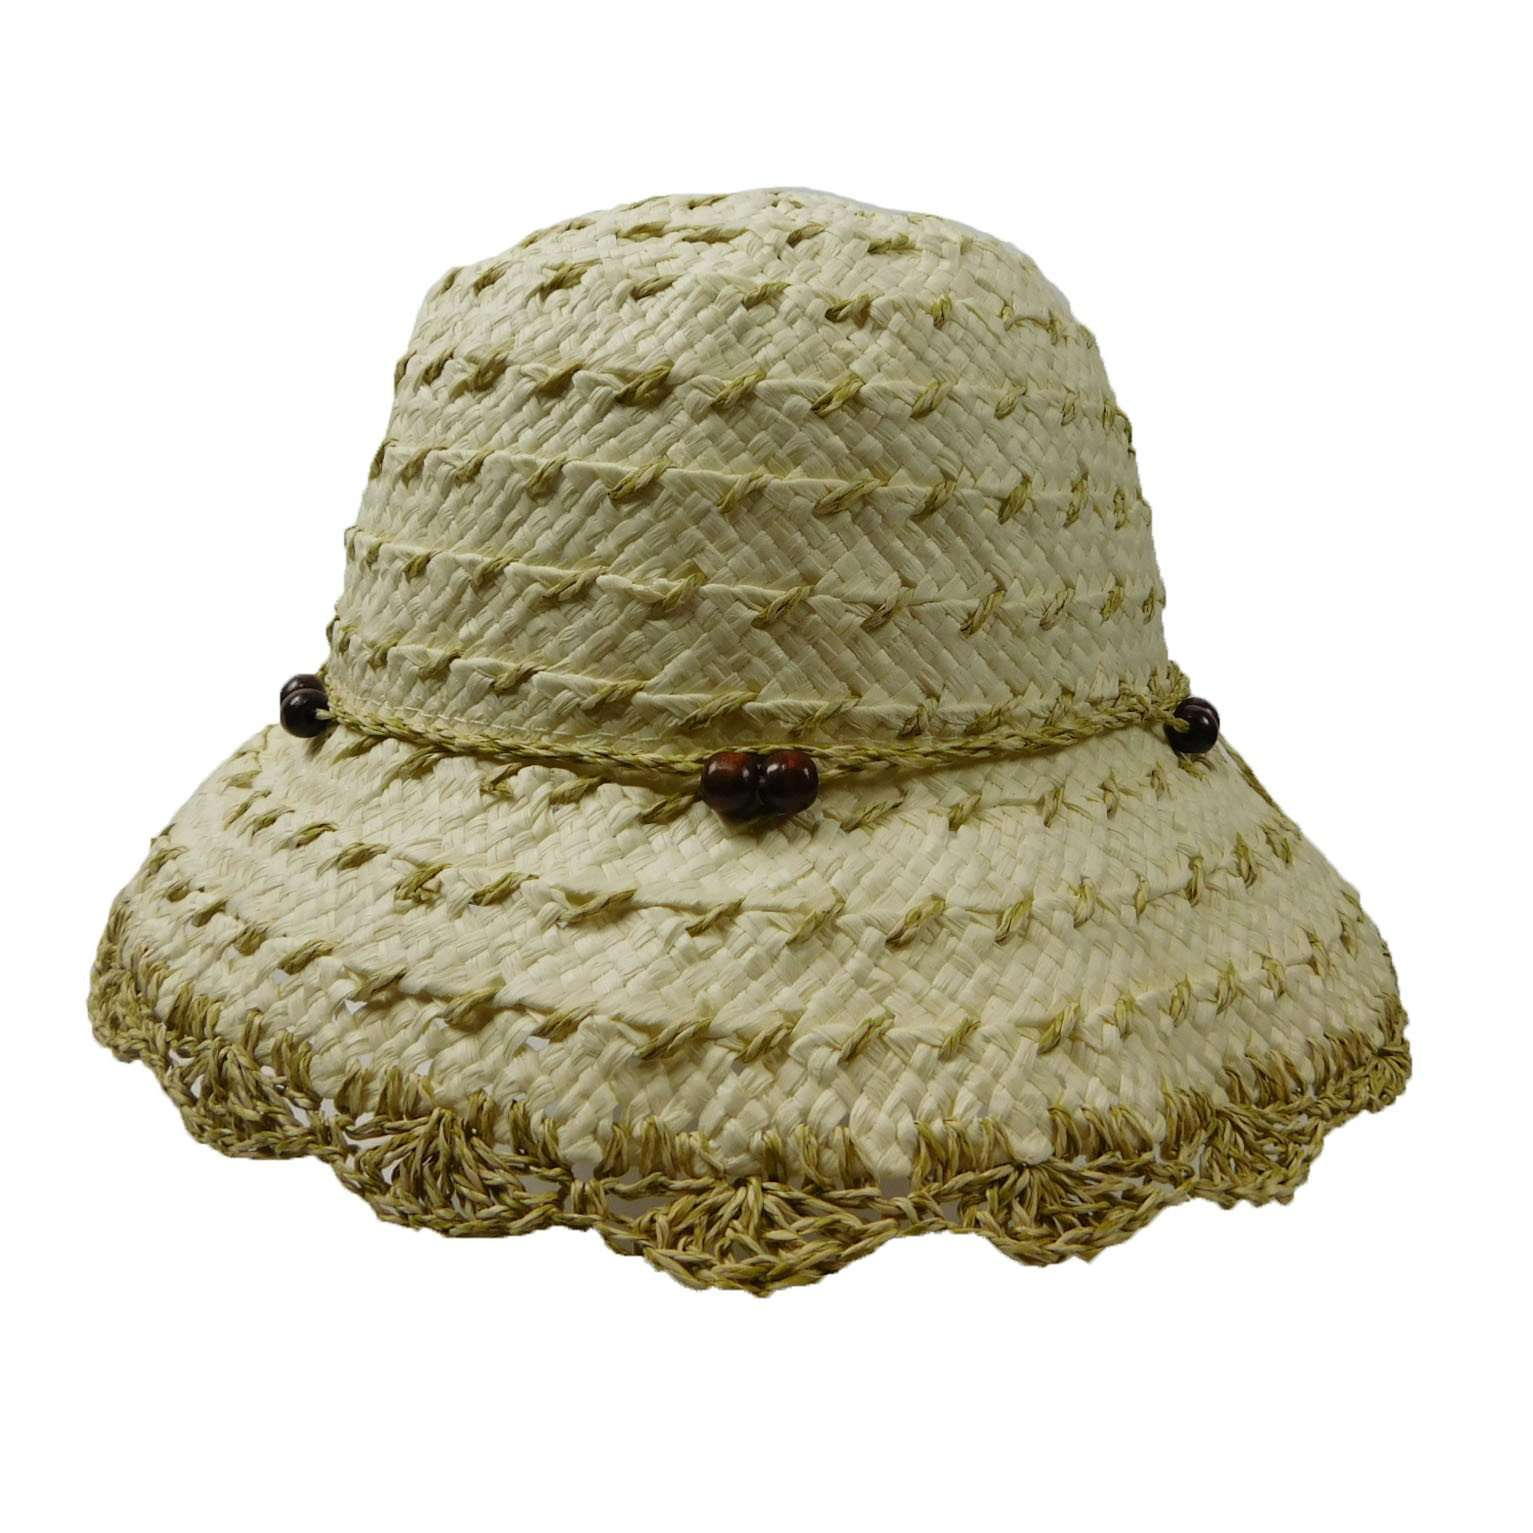 Summer Bucket Hat with Crocheted Brim - SetarTrading Hats